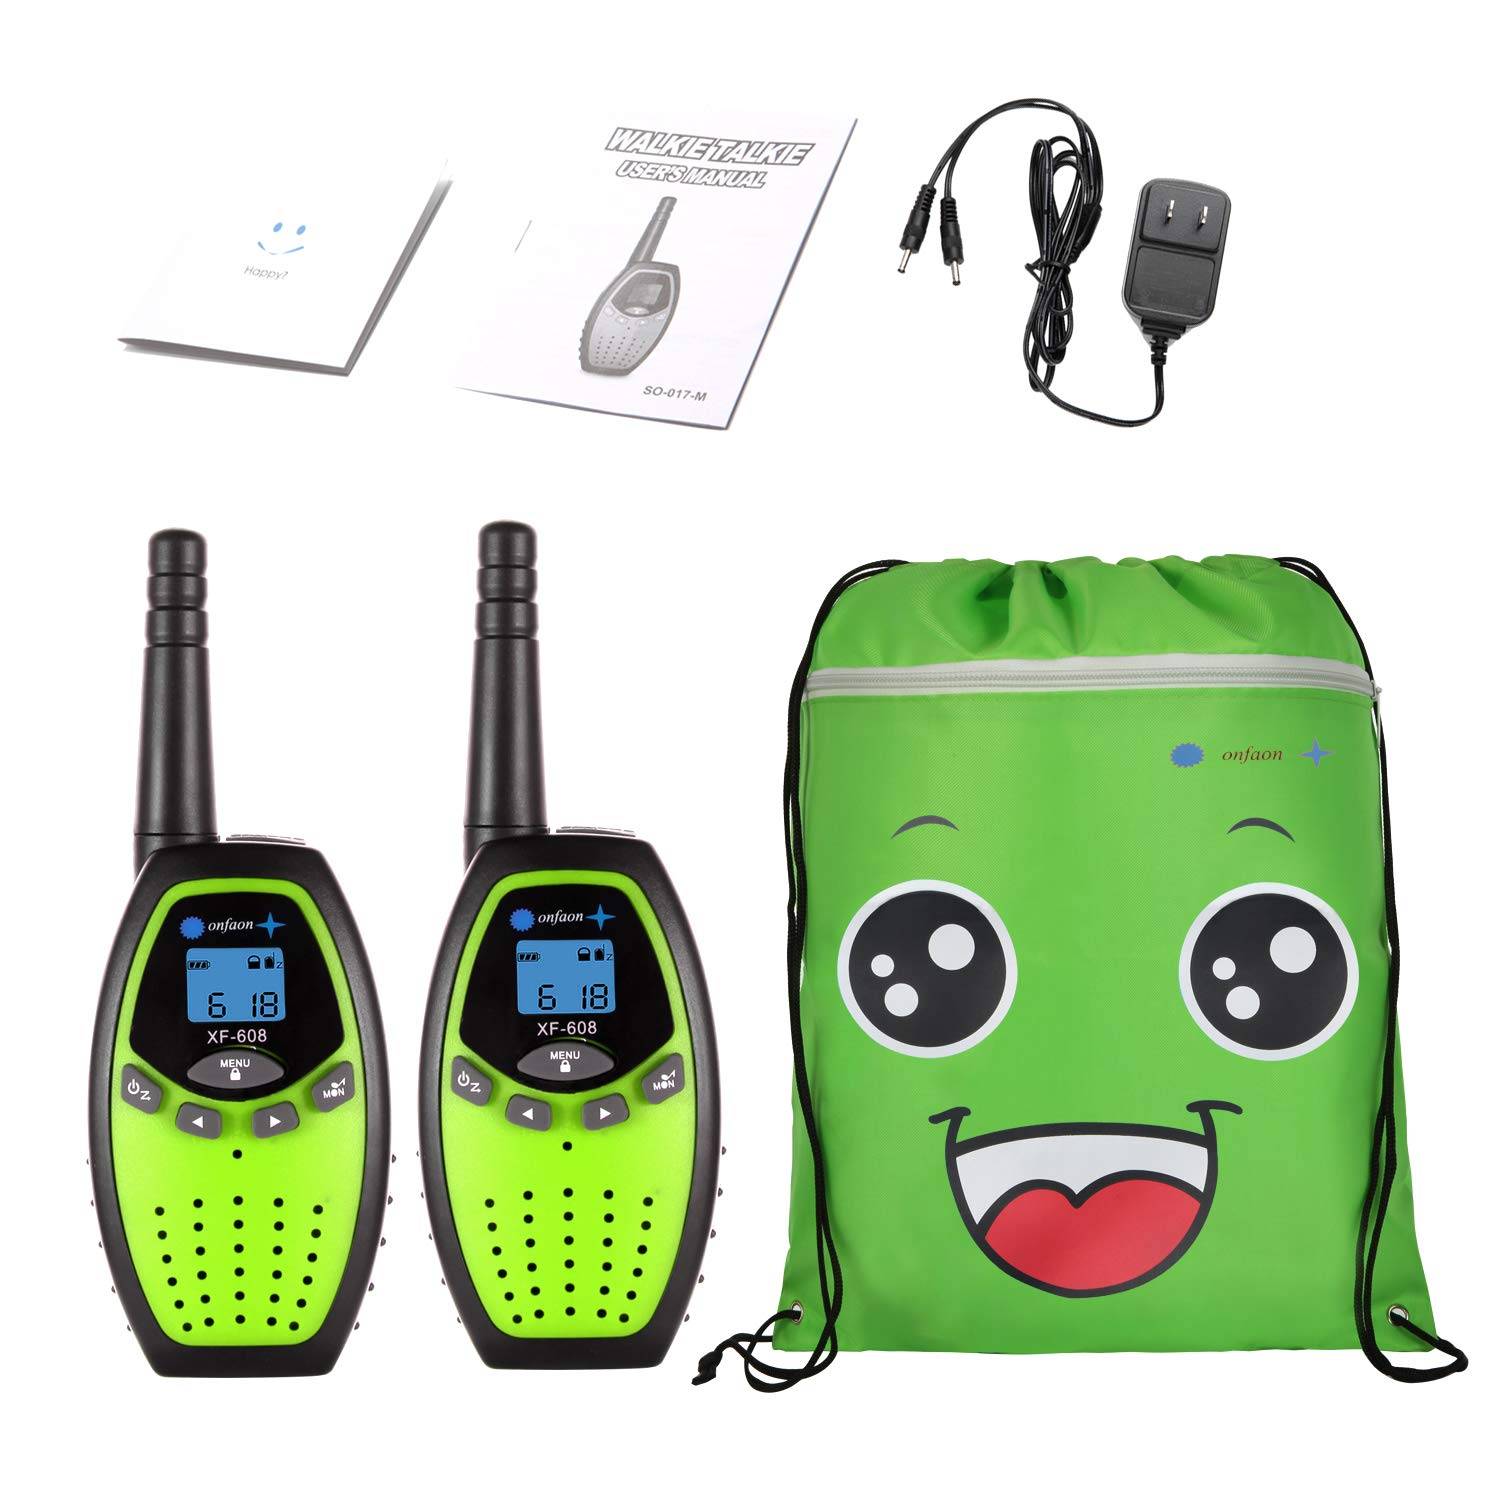 onfaon Walkies Talkies for Kids,22 Channels 2 Way Radios Long Range with Automatic Battery Save,Range Up to 2 Miles for Camping,Hiking,Fishing,Outdoor Activities. (Green)